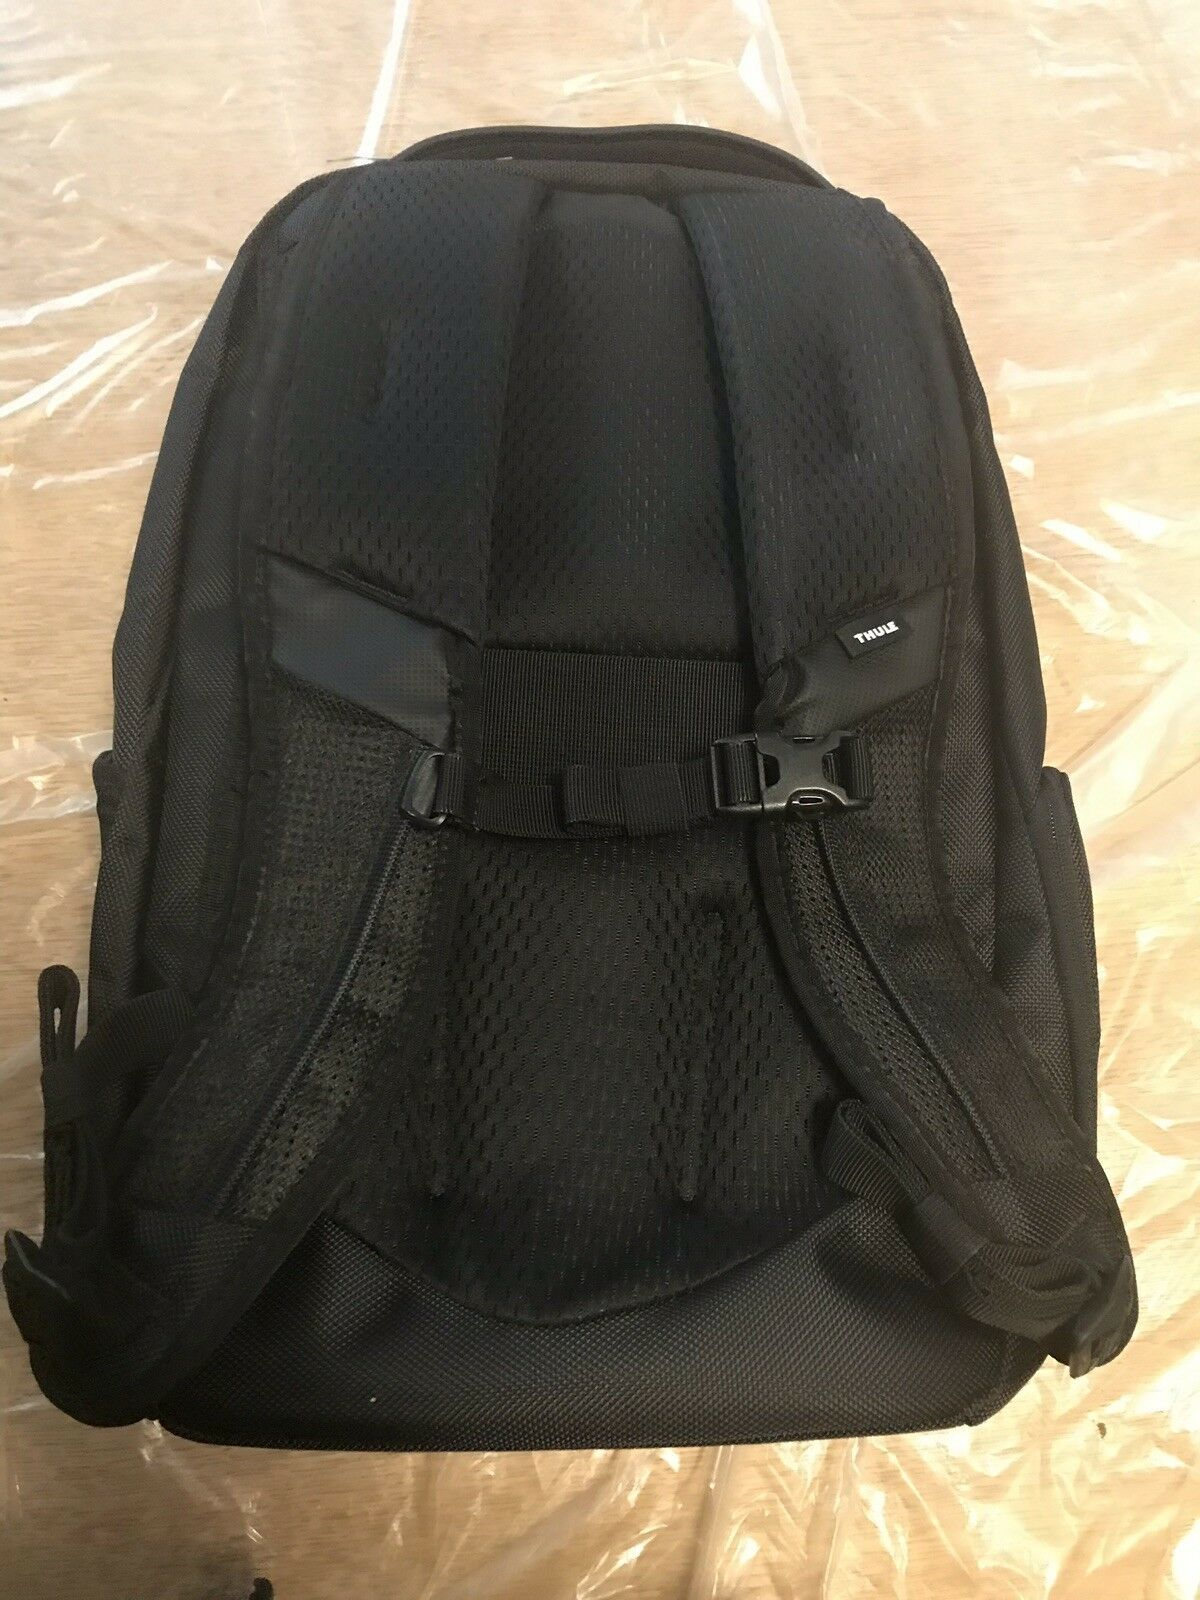 Brand NEW!!! Thule Accent Backpack 23L, TACBP116 Brand New with Tags